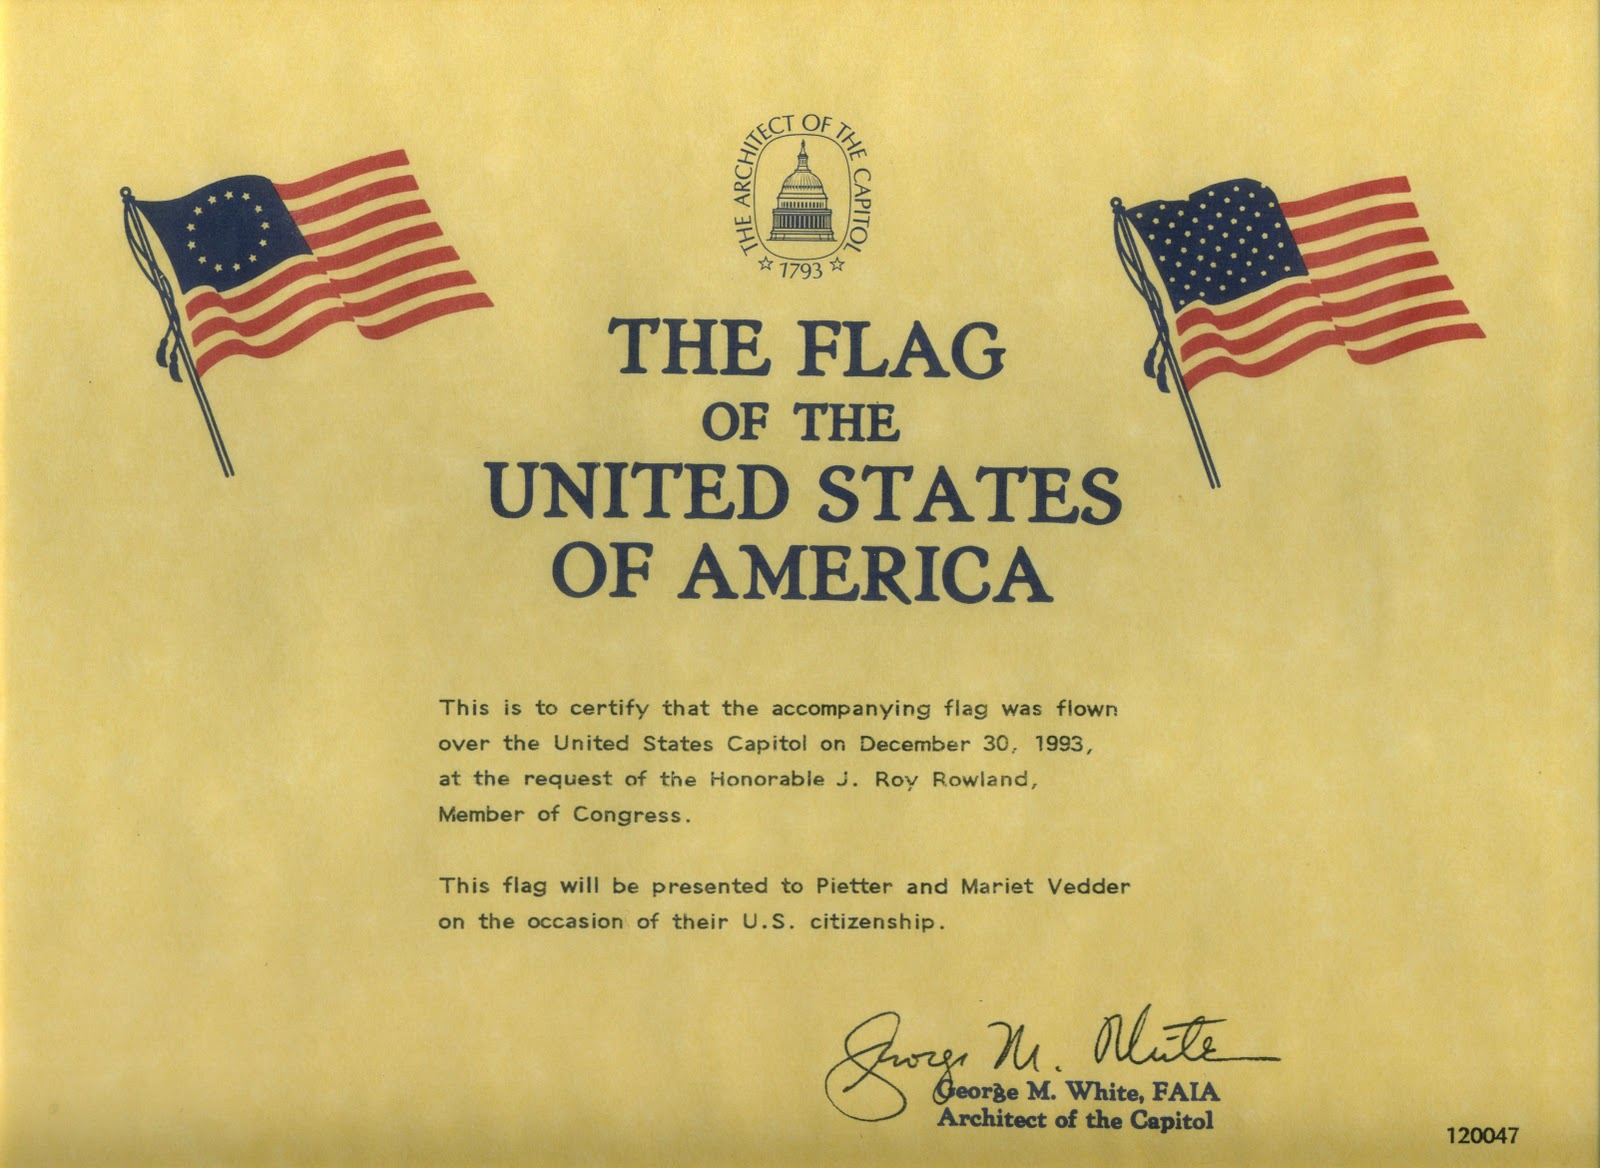 Flag flying certificate templates sonundrobin flag flying certificate templates 1betcityfo Image collections